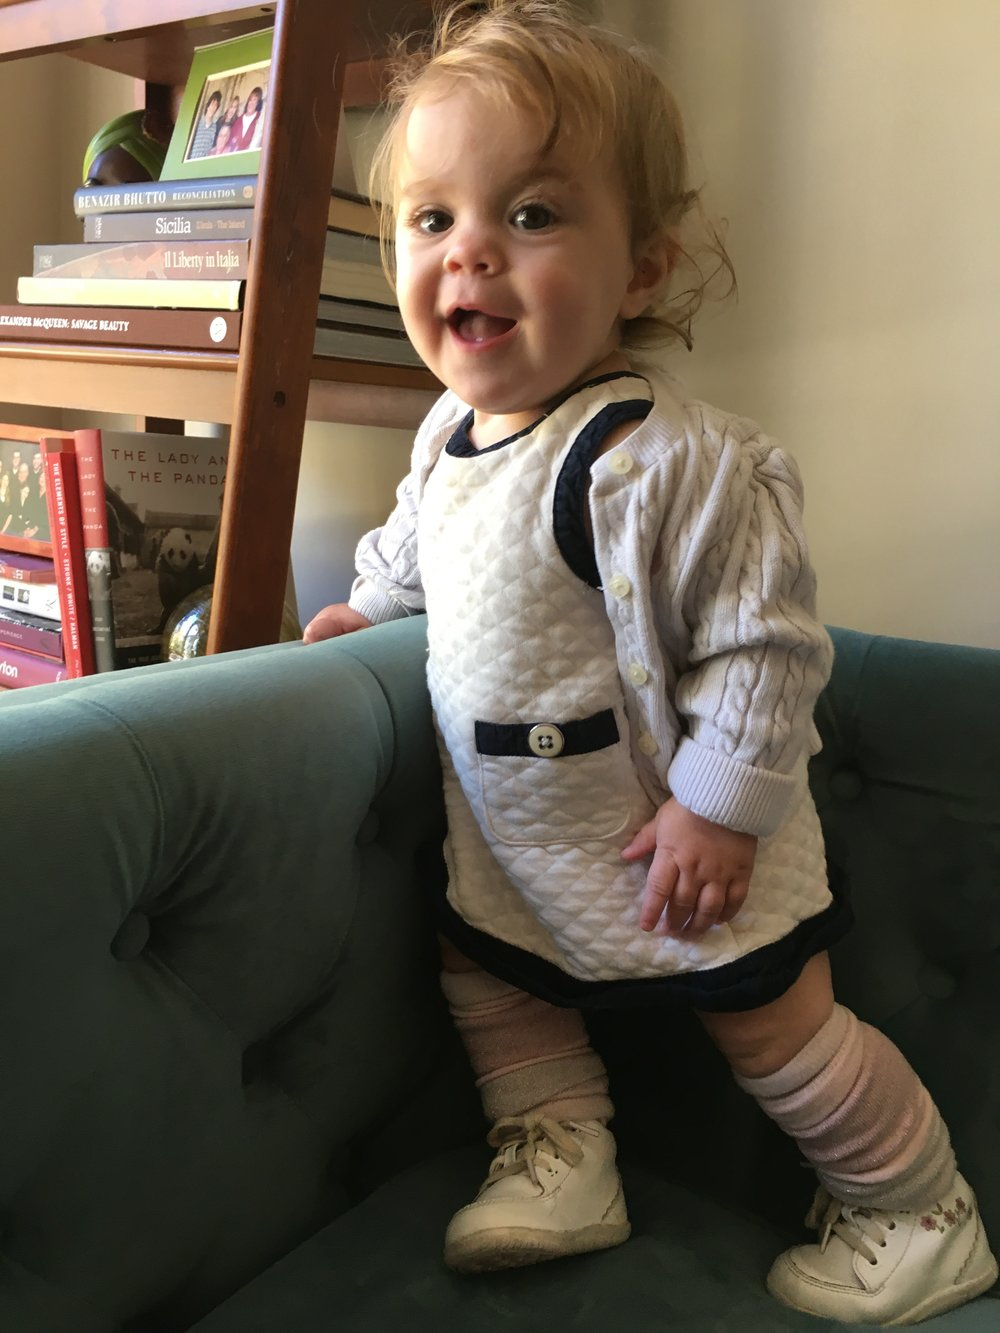 Pantsuit legacy (When you have thigh rolls like these, you don't cover them up with pants. Millie's wearing suffragette white instead. #legwarmernation)